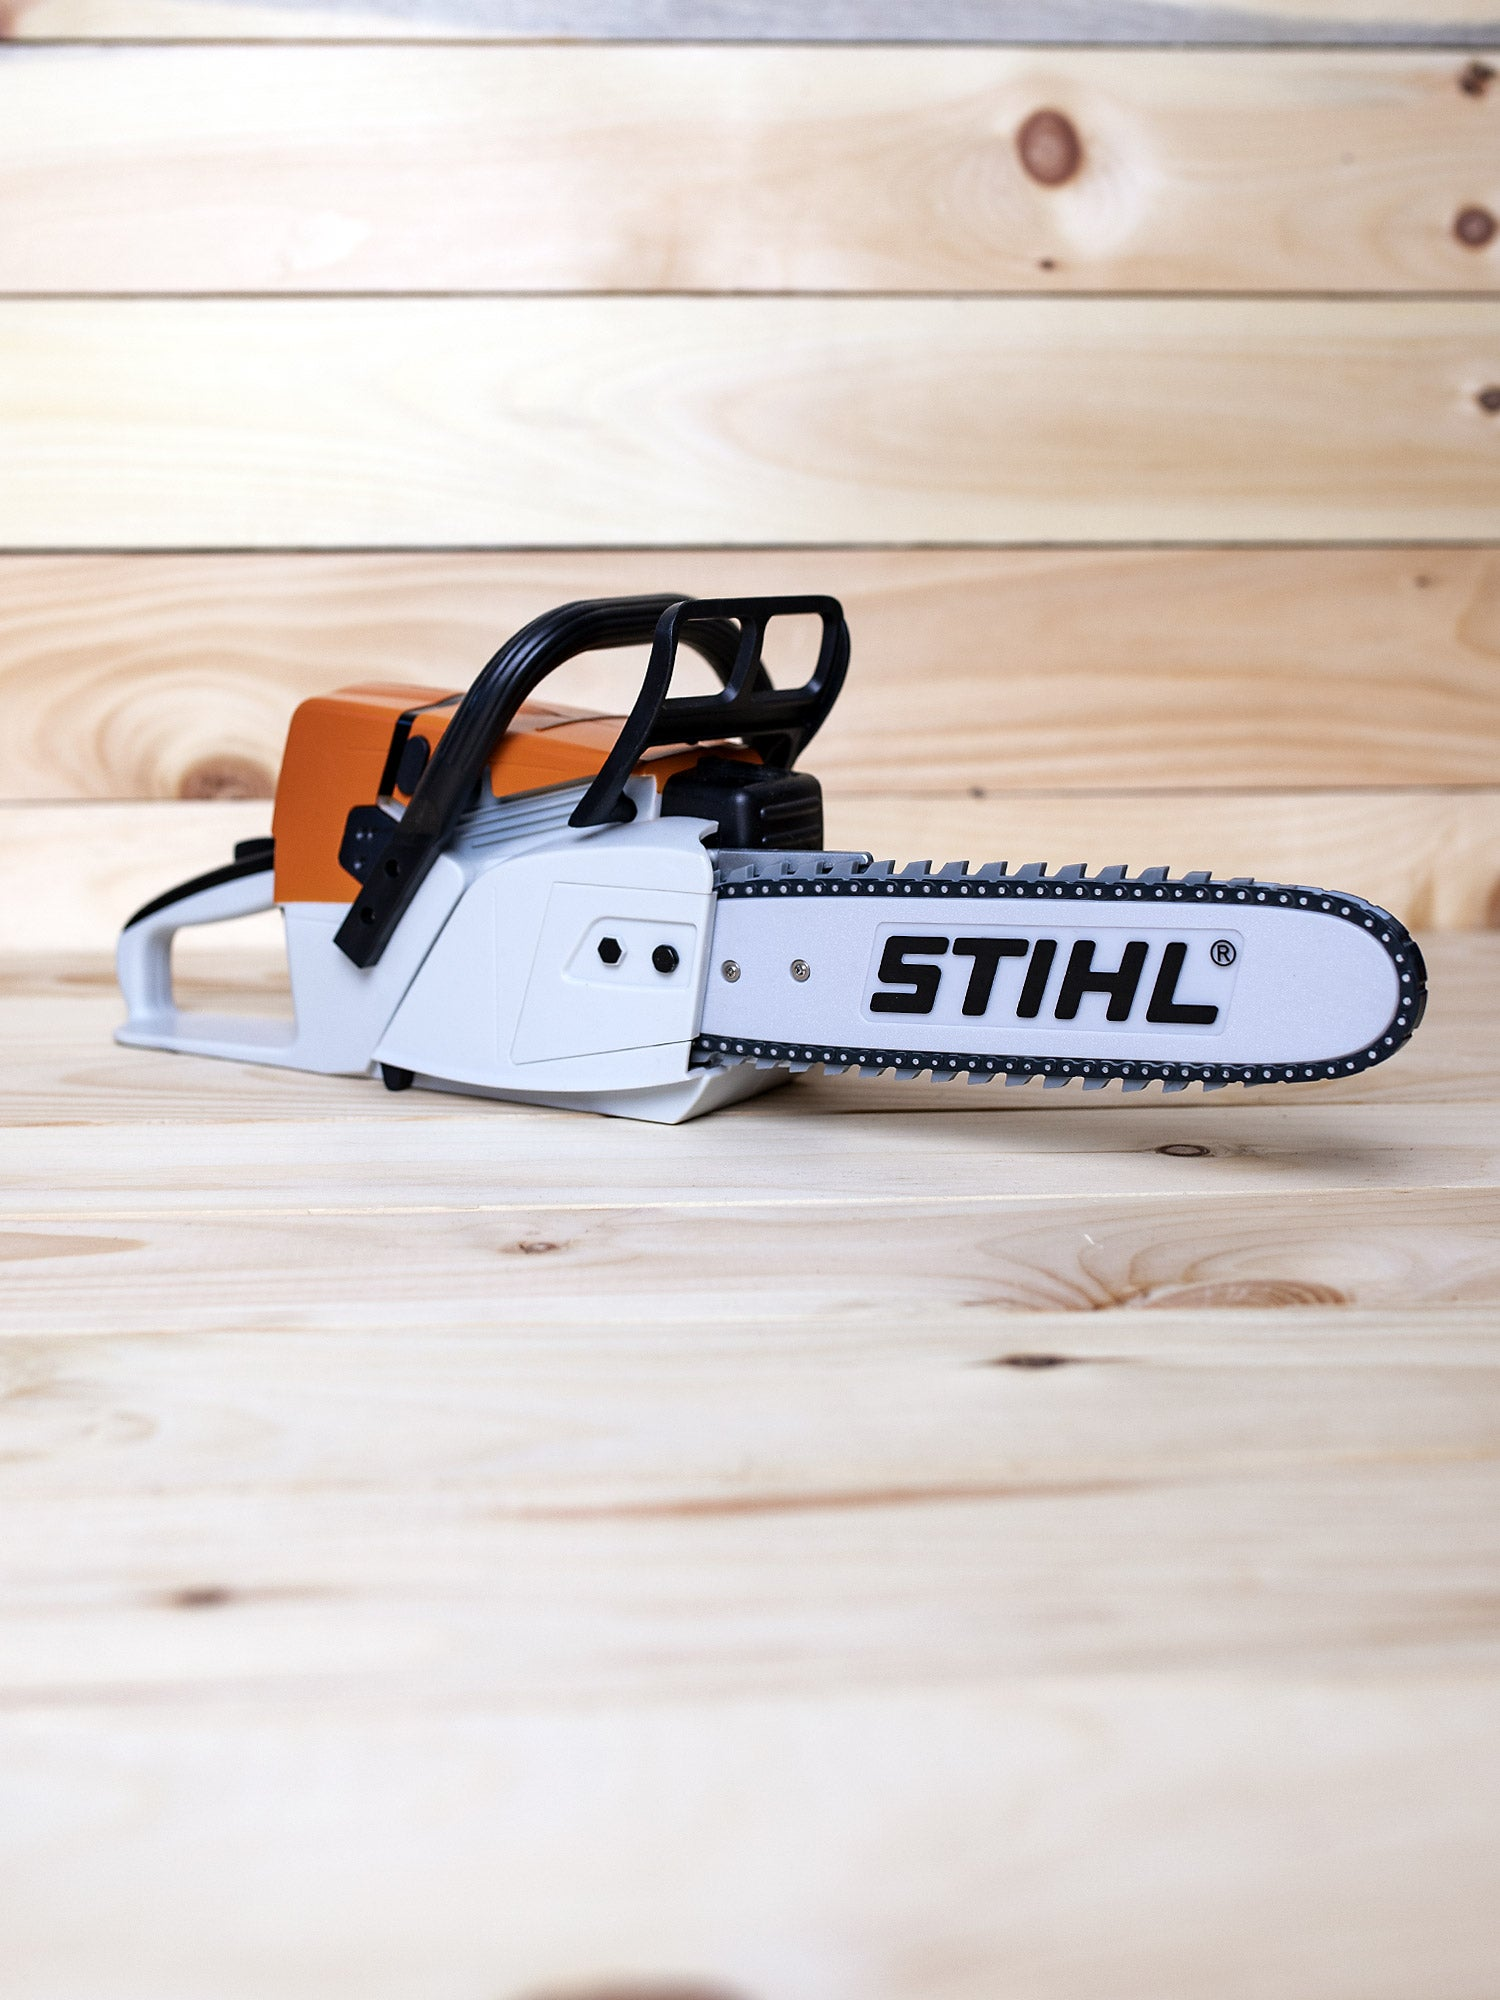 STIHL TOY CHAIN SAW